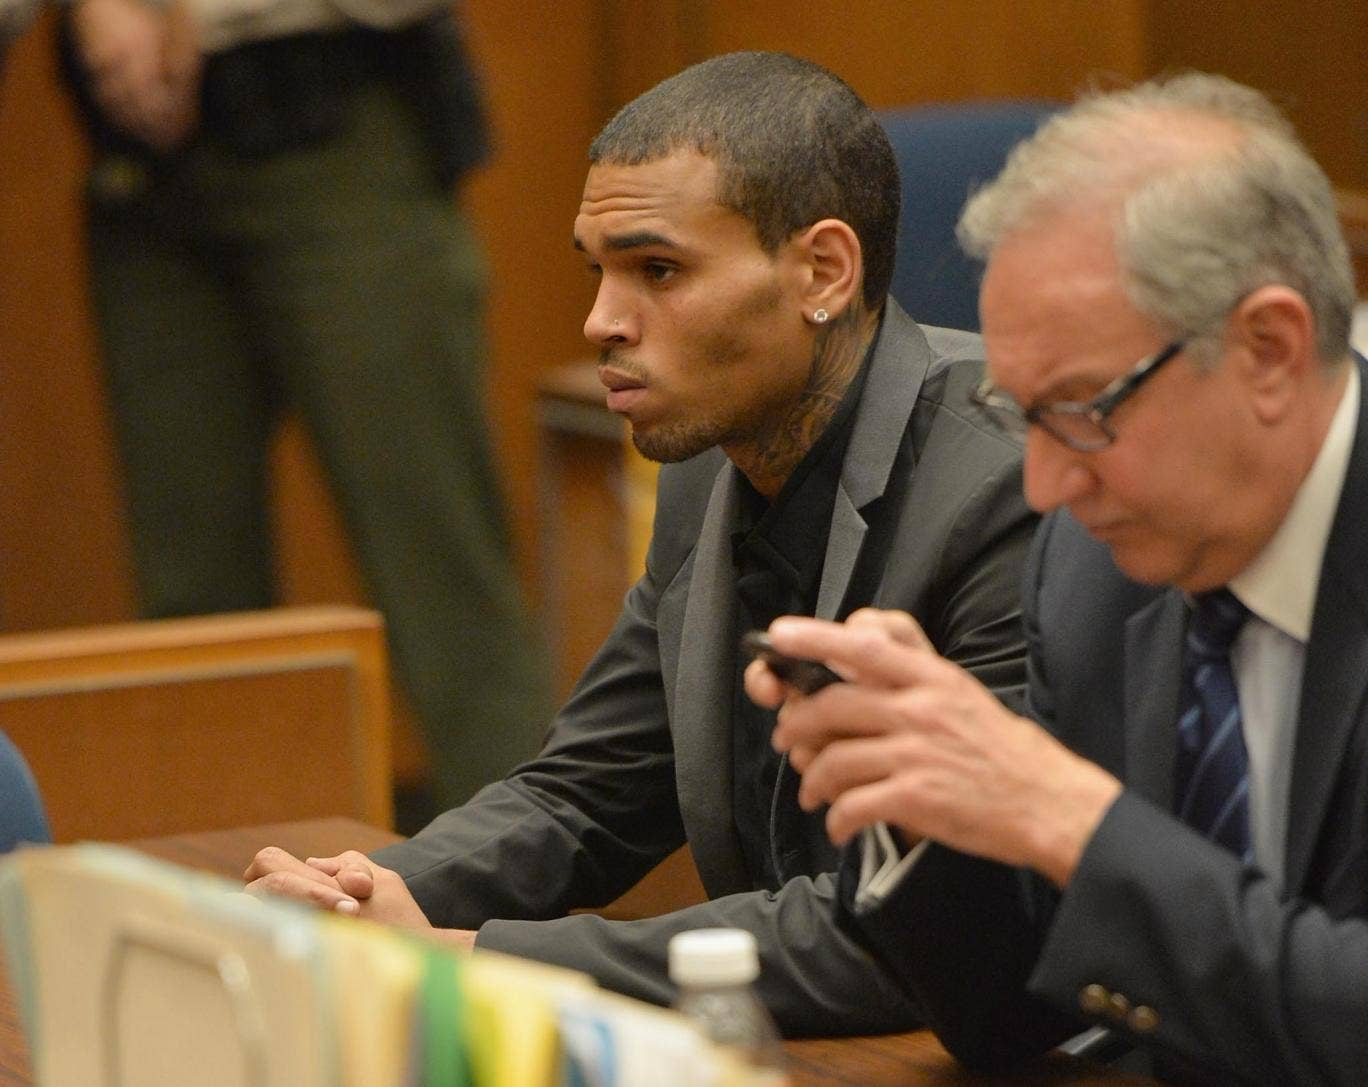 Chris Brown with his lawyer Mark Geragow during Brown's last court appearance in Los Angeles, California